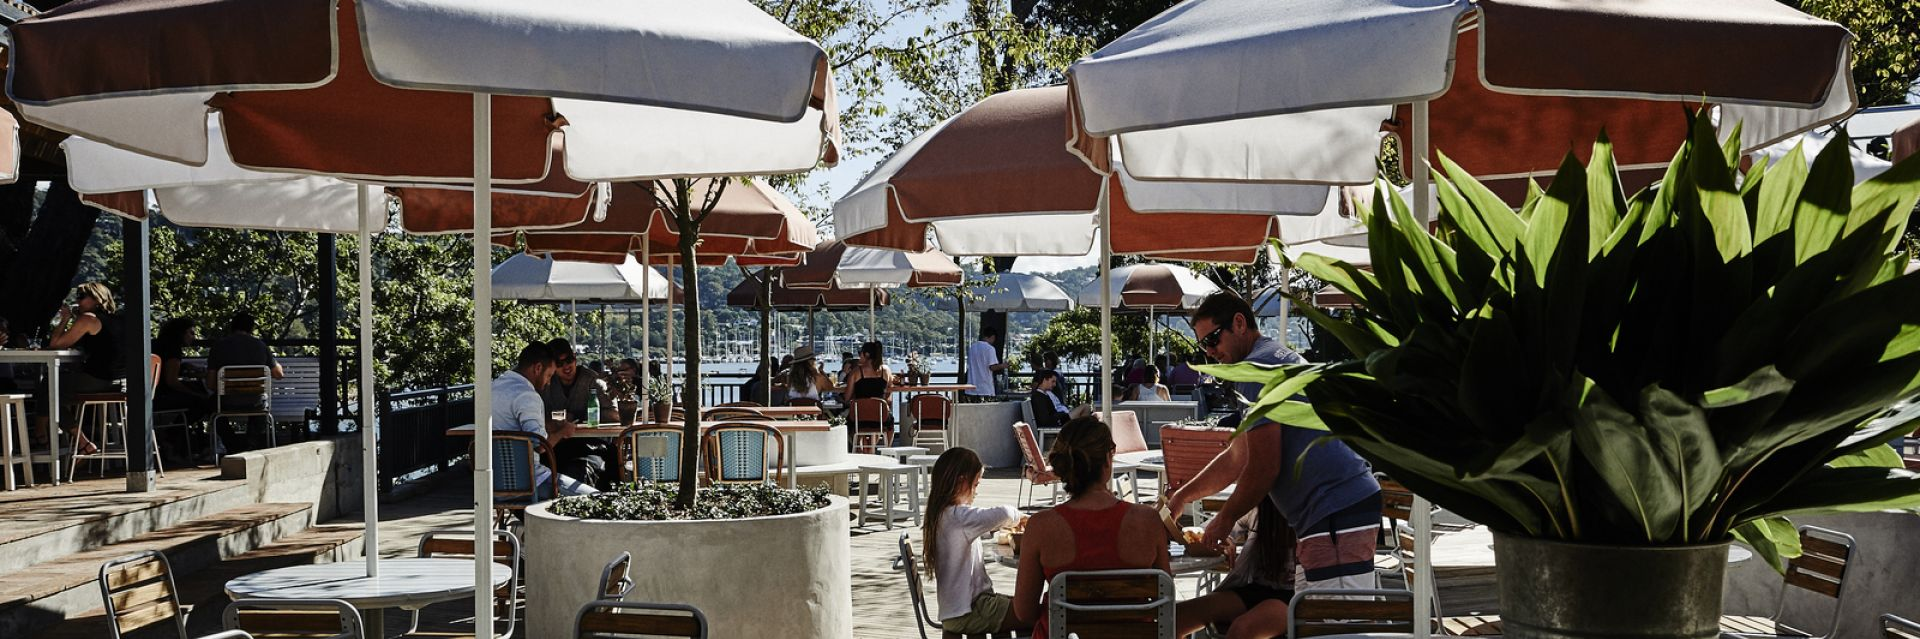 Outdoor drinking and dining deck at The Newport on a sunny day